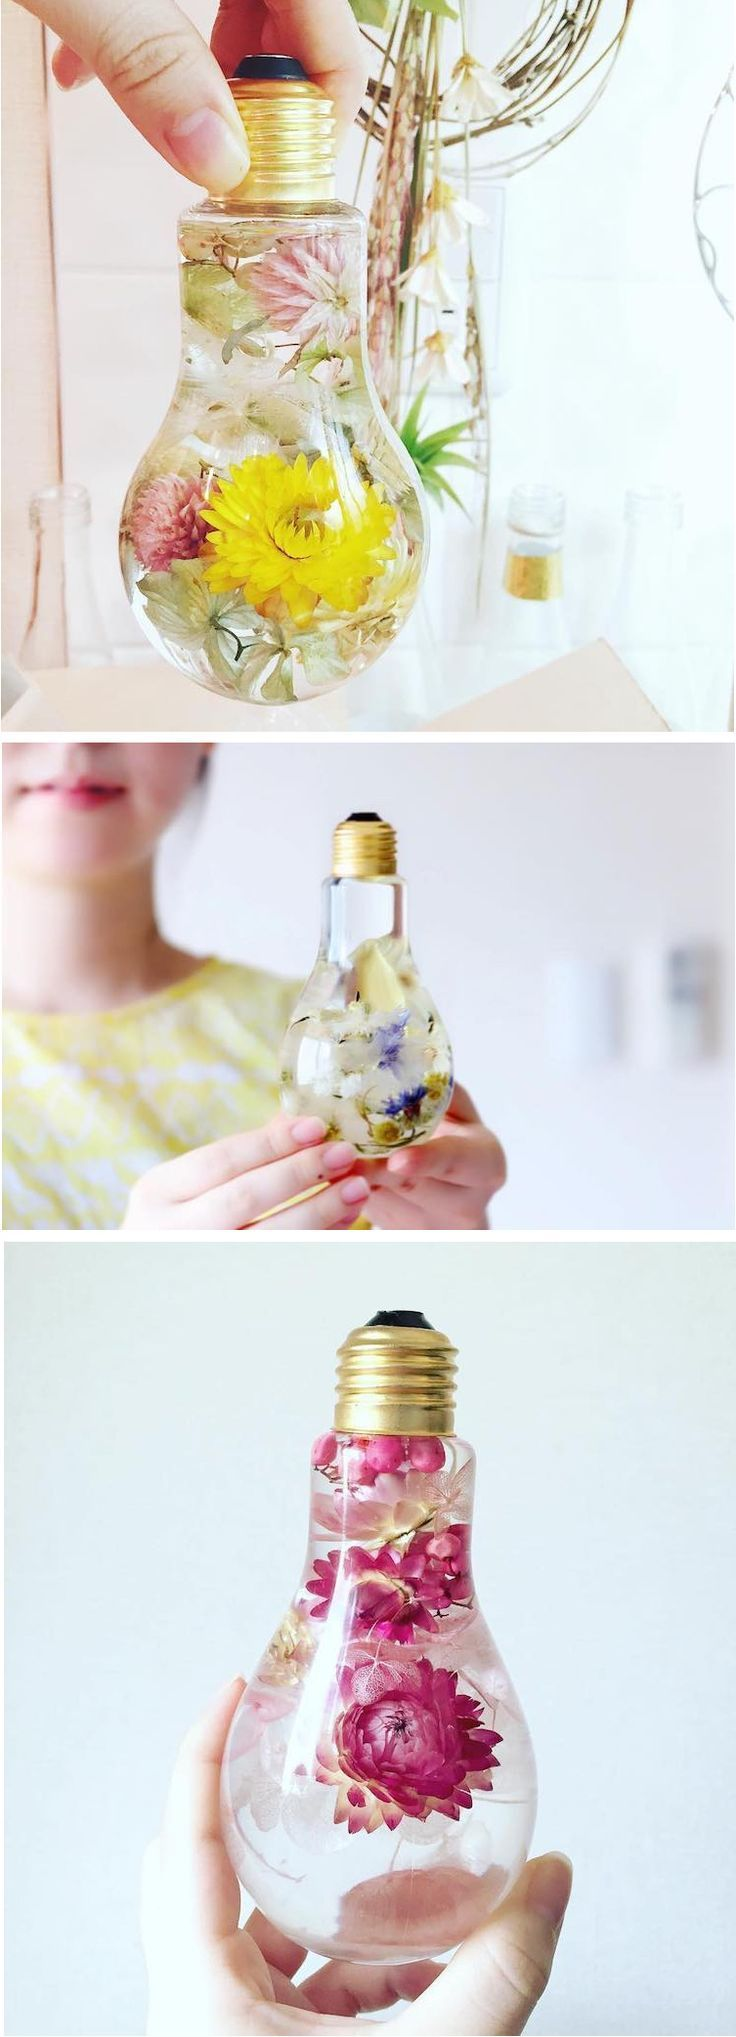 Light bulb vase | unique vases | light bulb planter